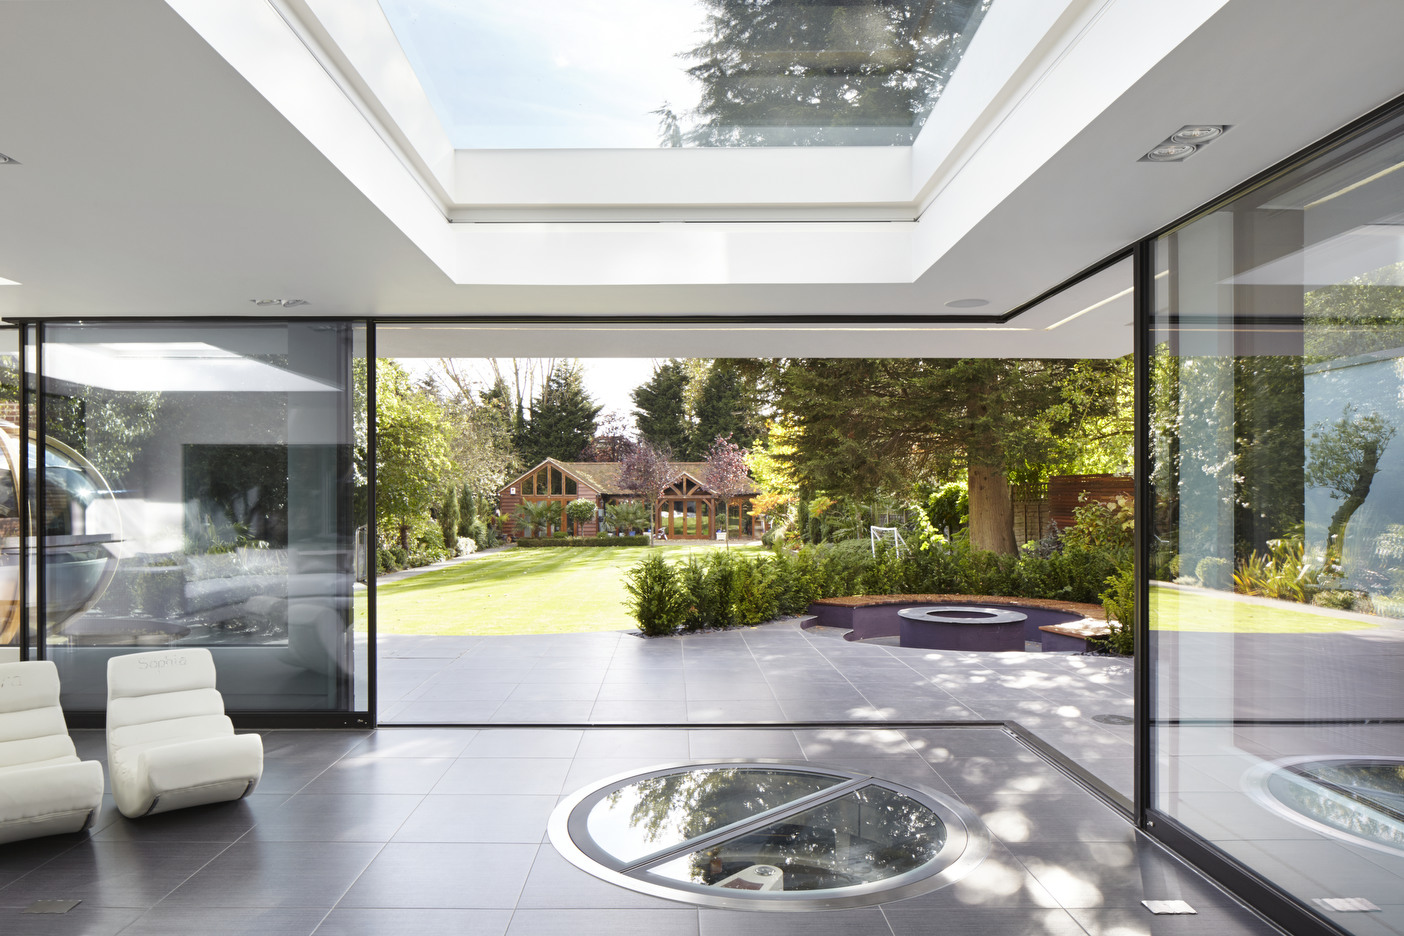 Real Homes: Extension inspiration